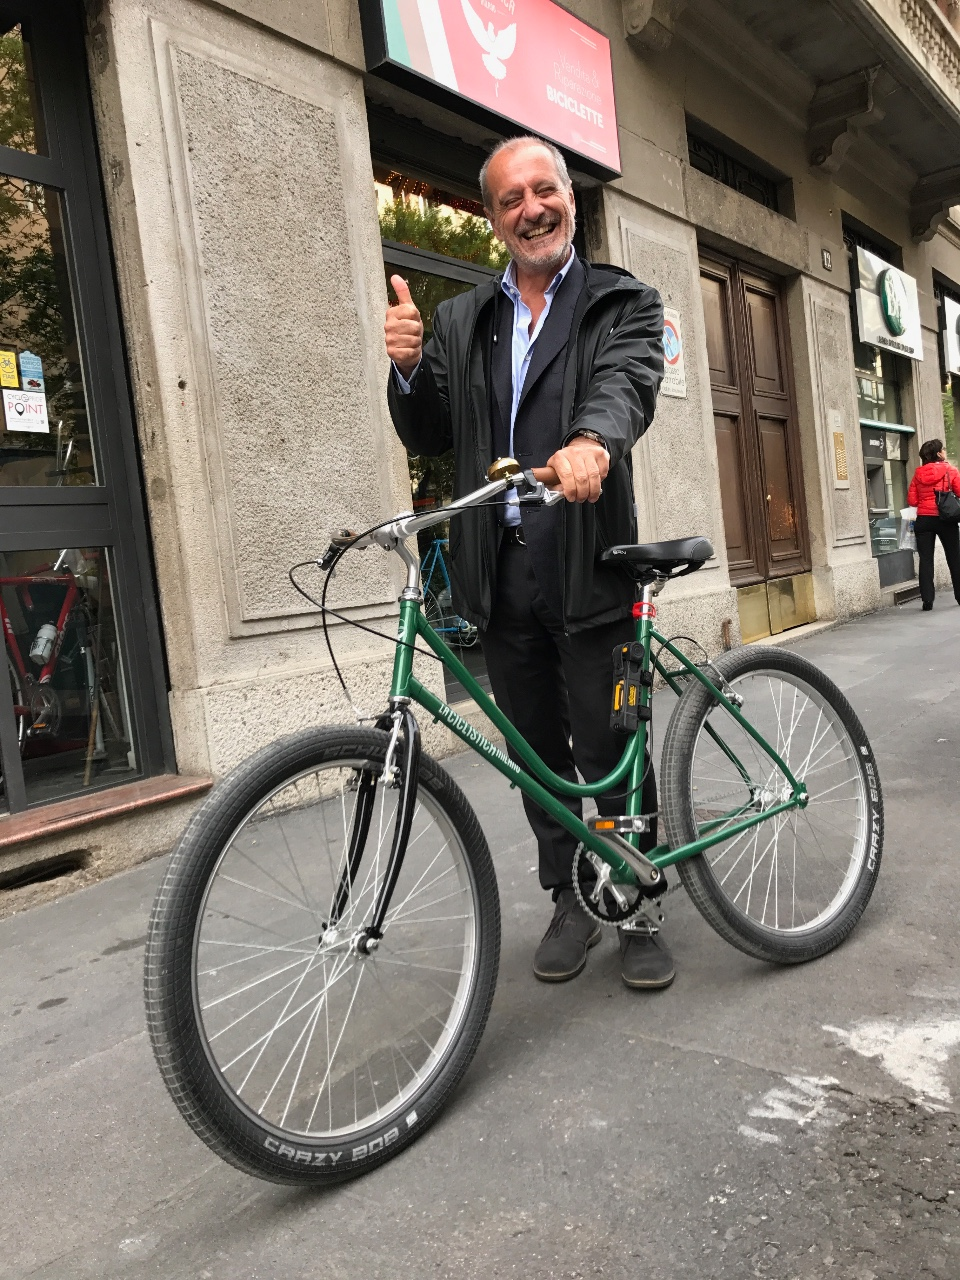 la Ciclistica Milano La 01 step through verde brexit